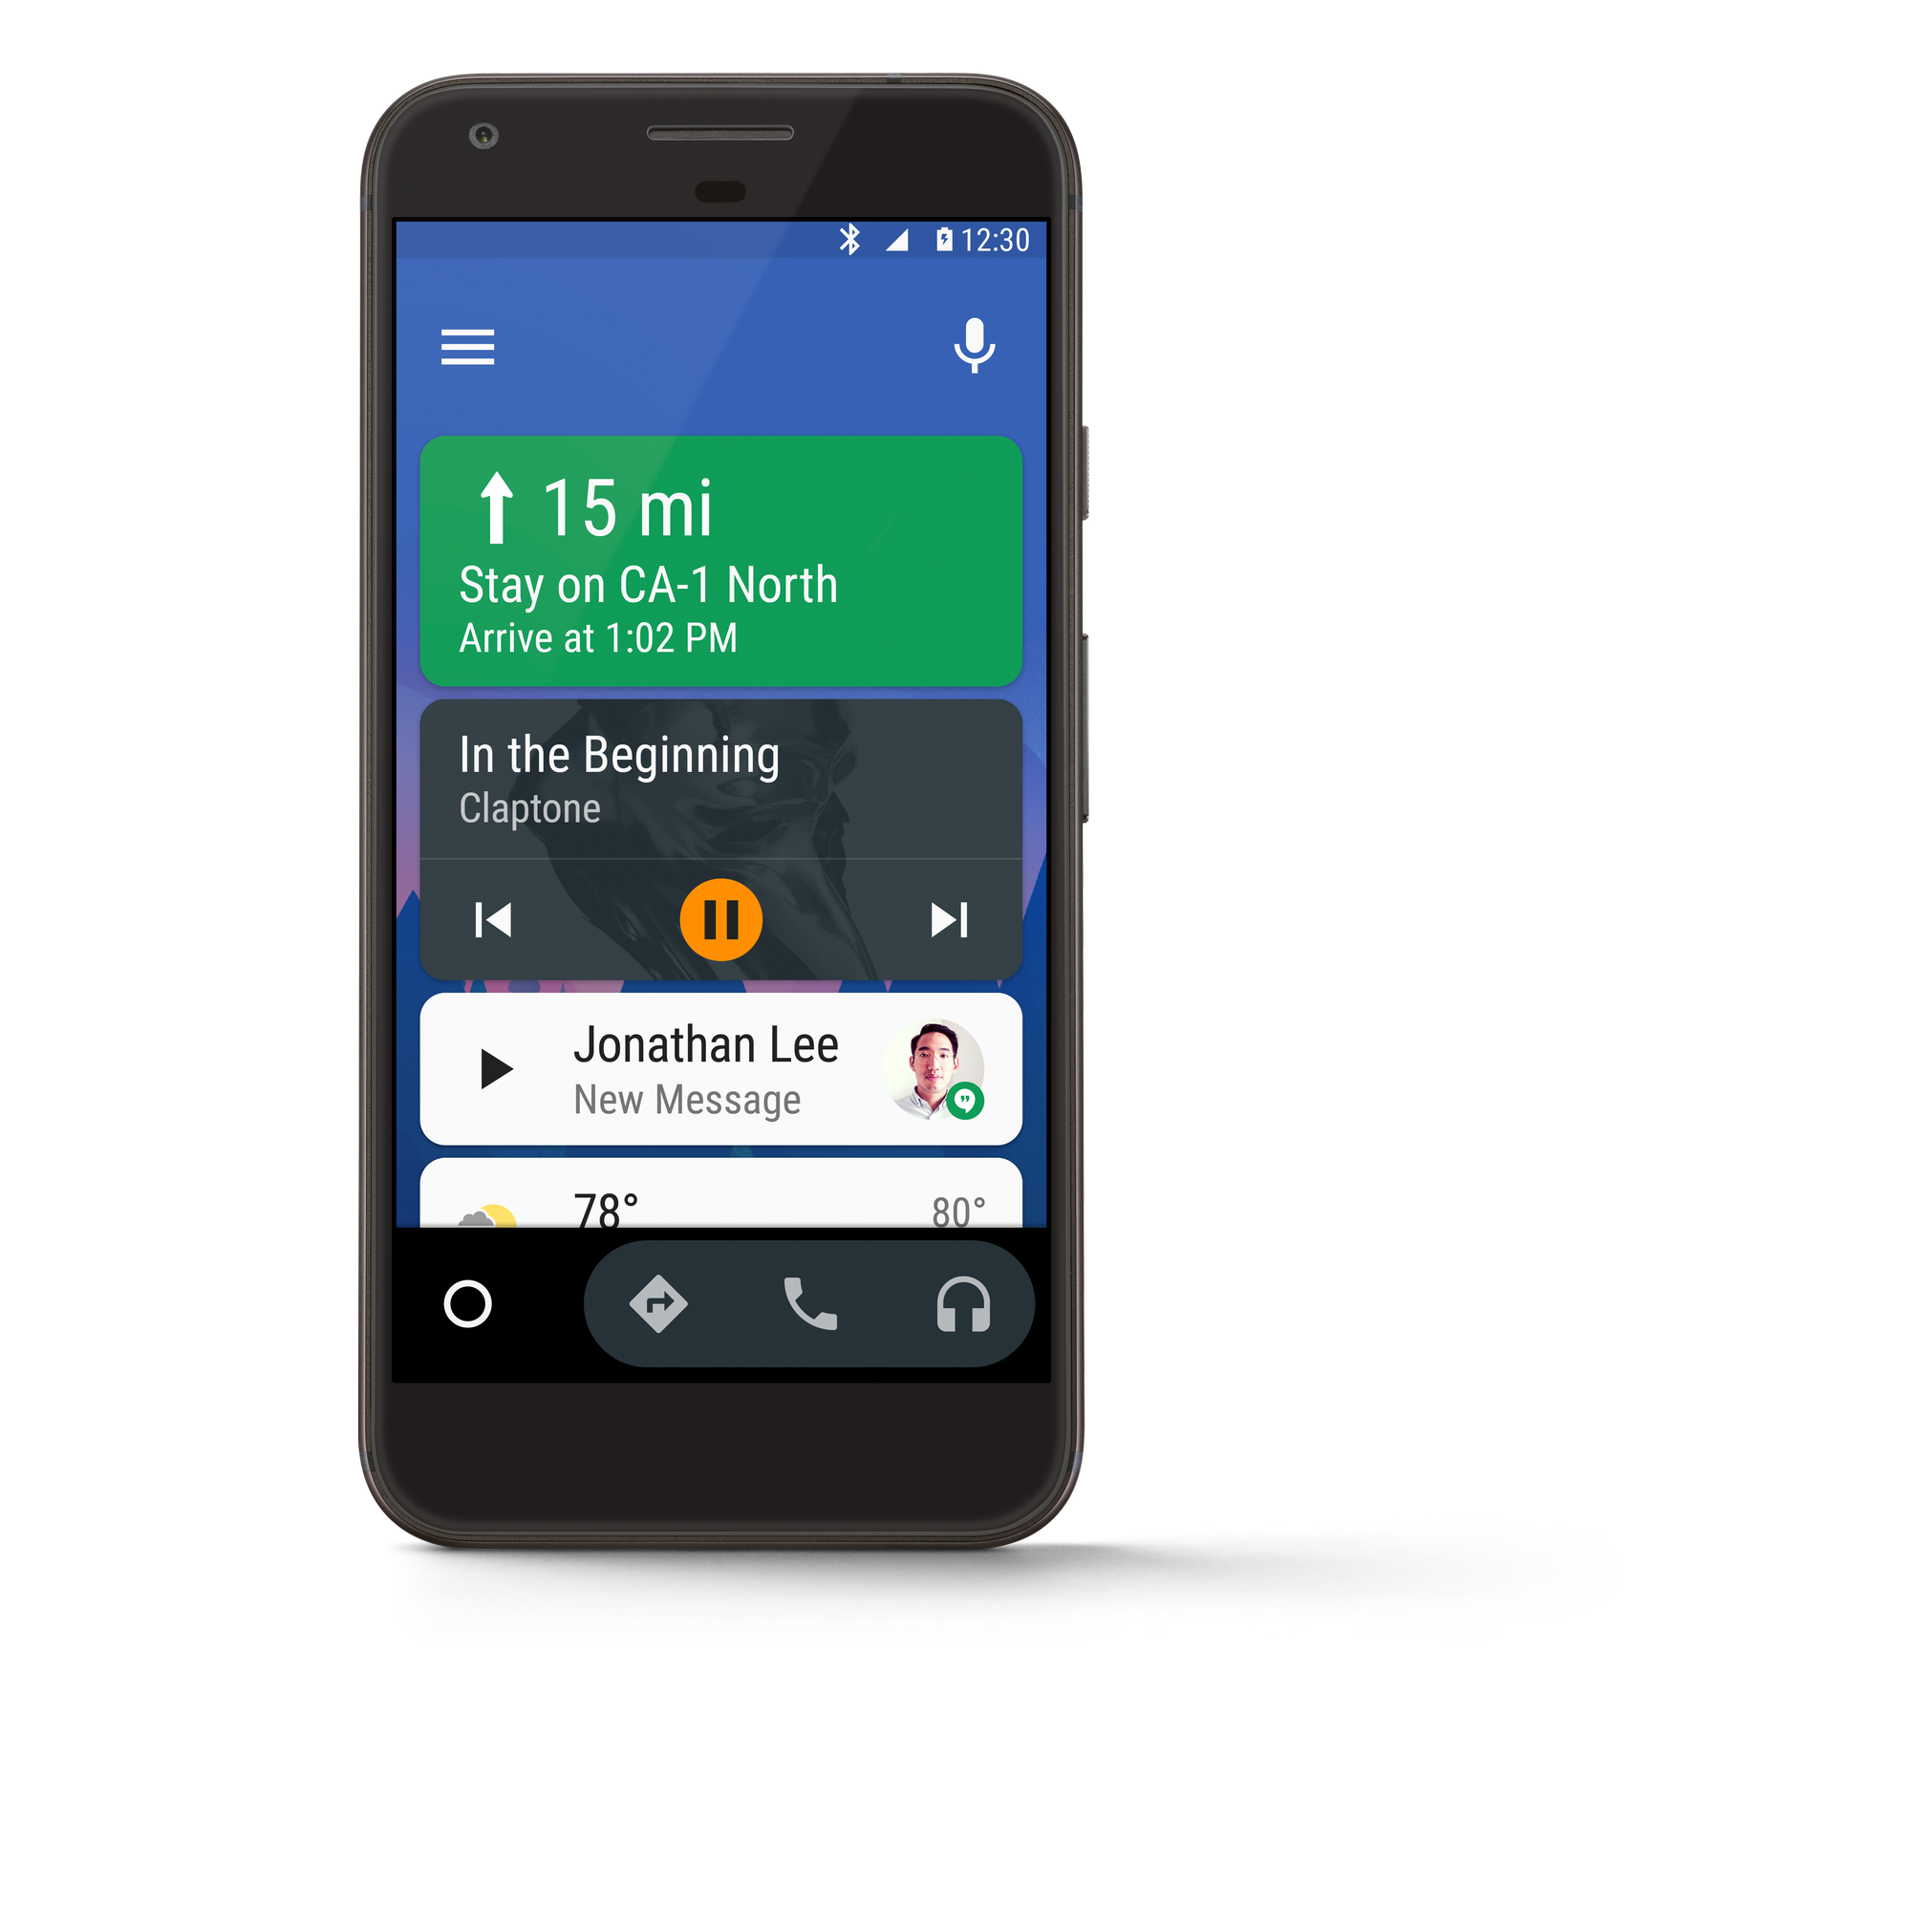 Phone Android Phone What Is It android auto now available in every car on your phone screen